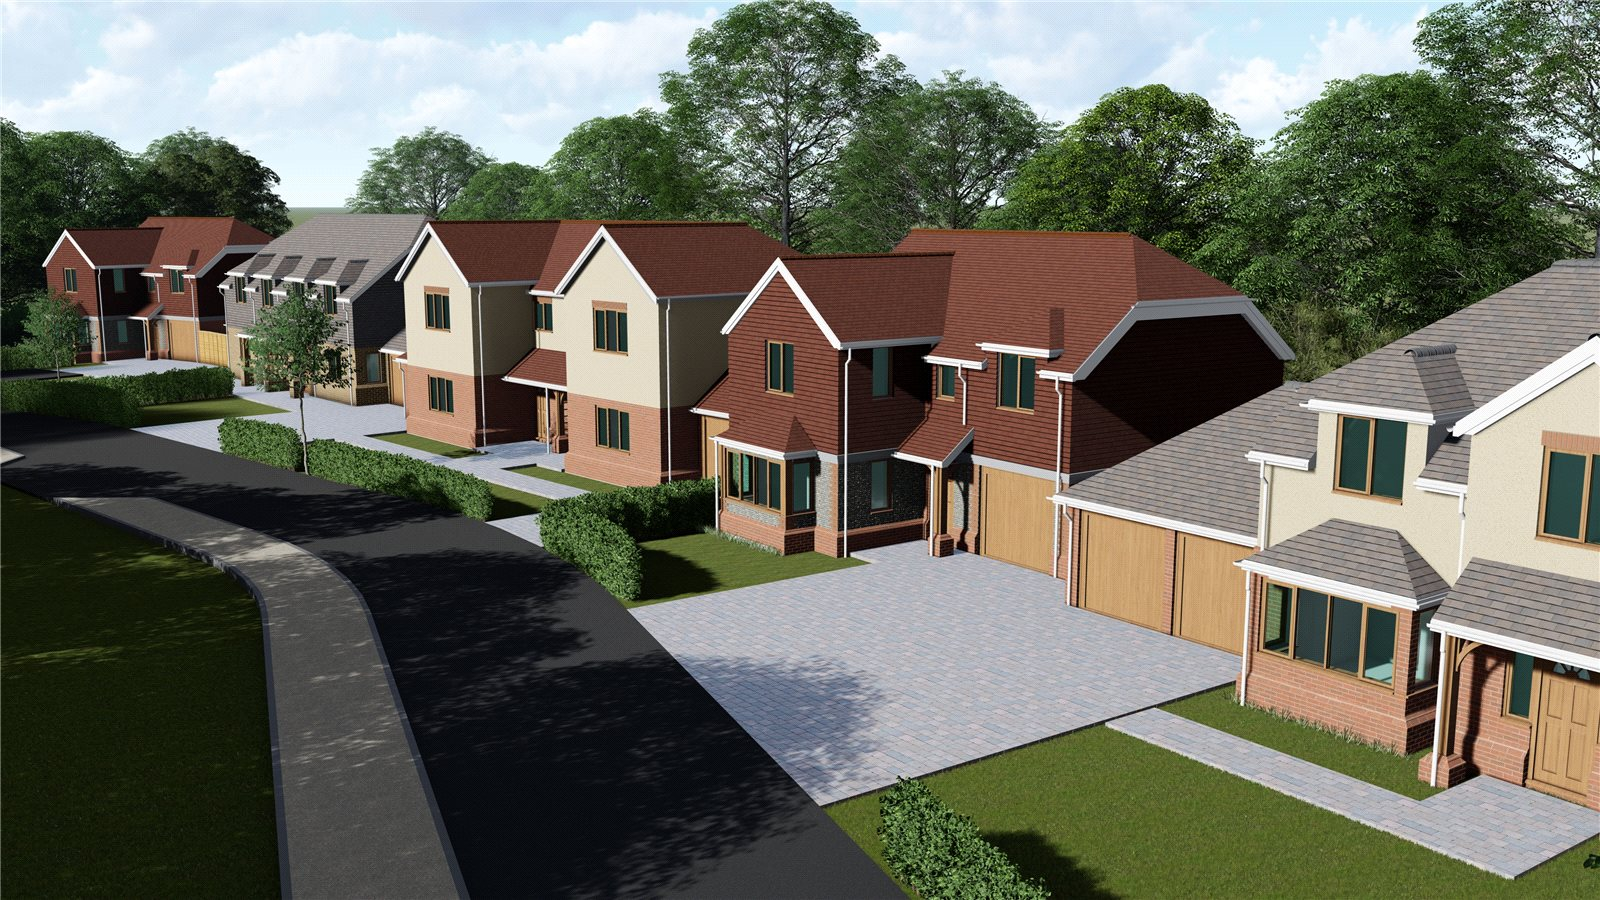 4 bed house for sale in Starlings View, Arundel Road, Angmering 3